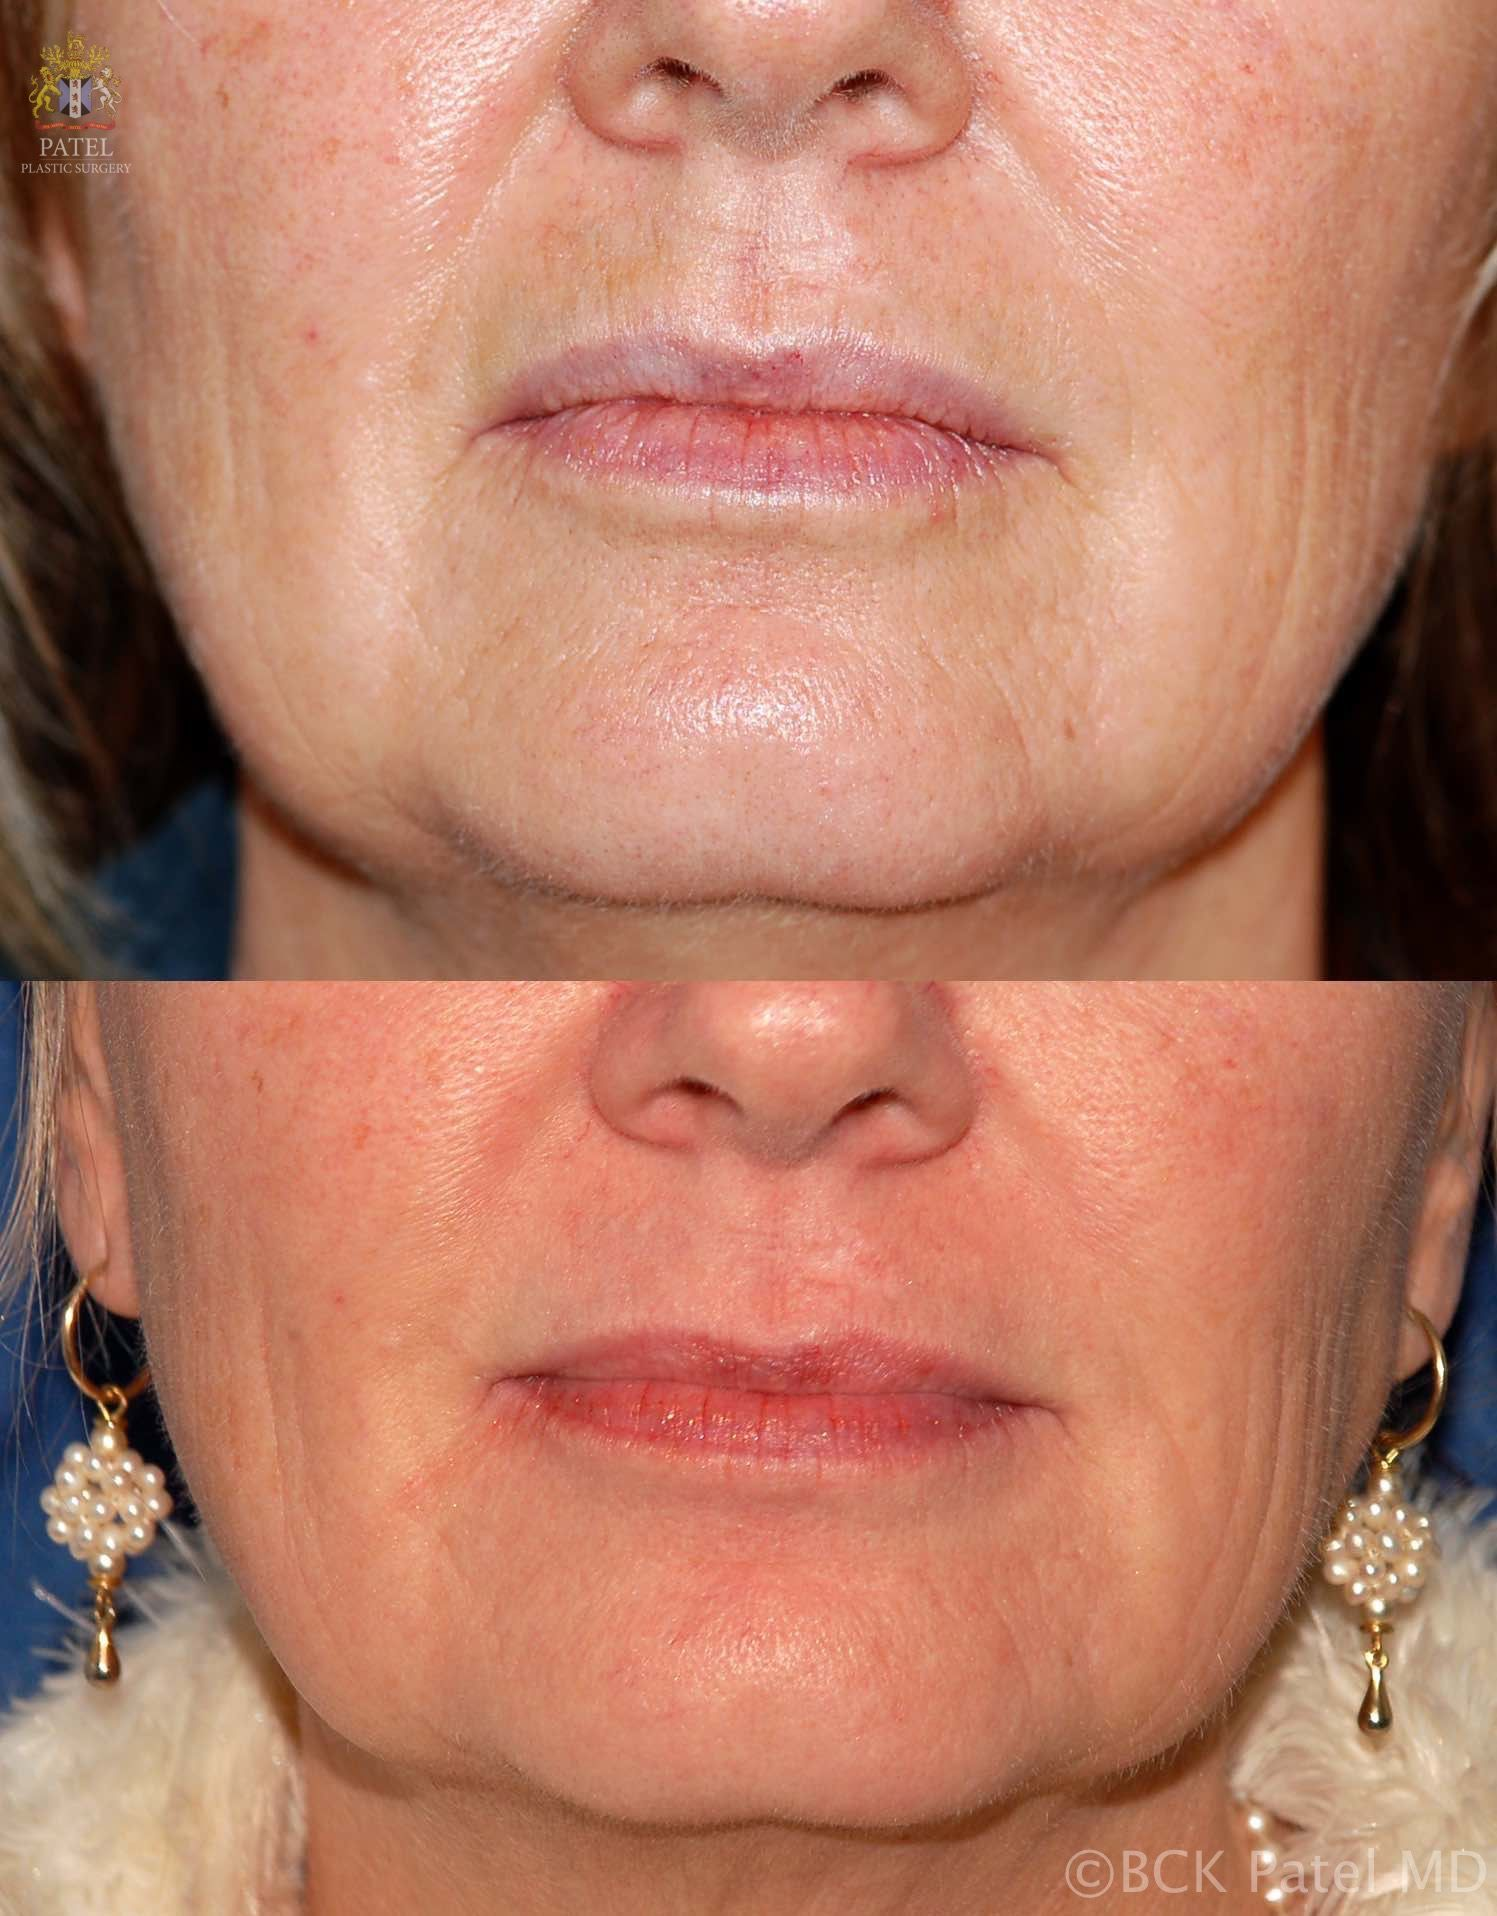 englishsurgeon.com. Photos show the results of using the CO2 fractionated laser for lip lines and skin texture